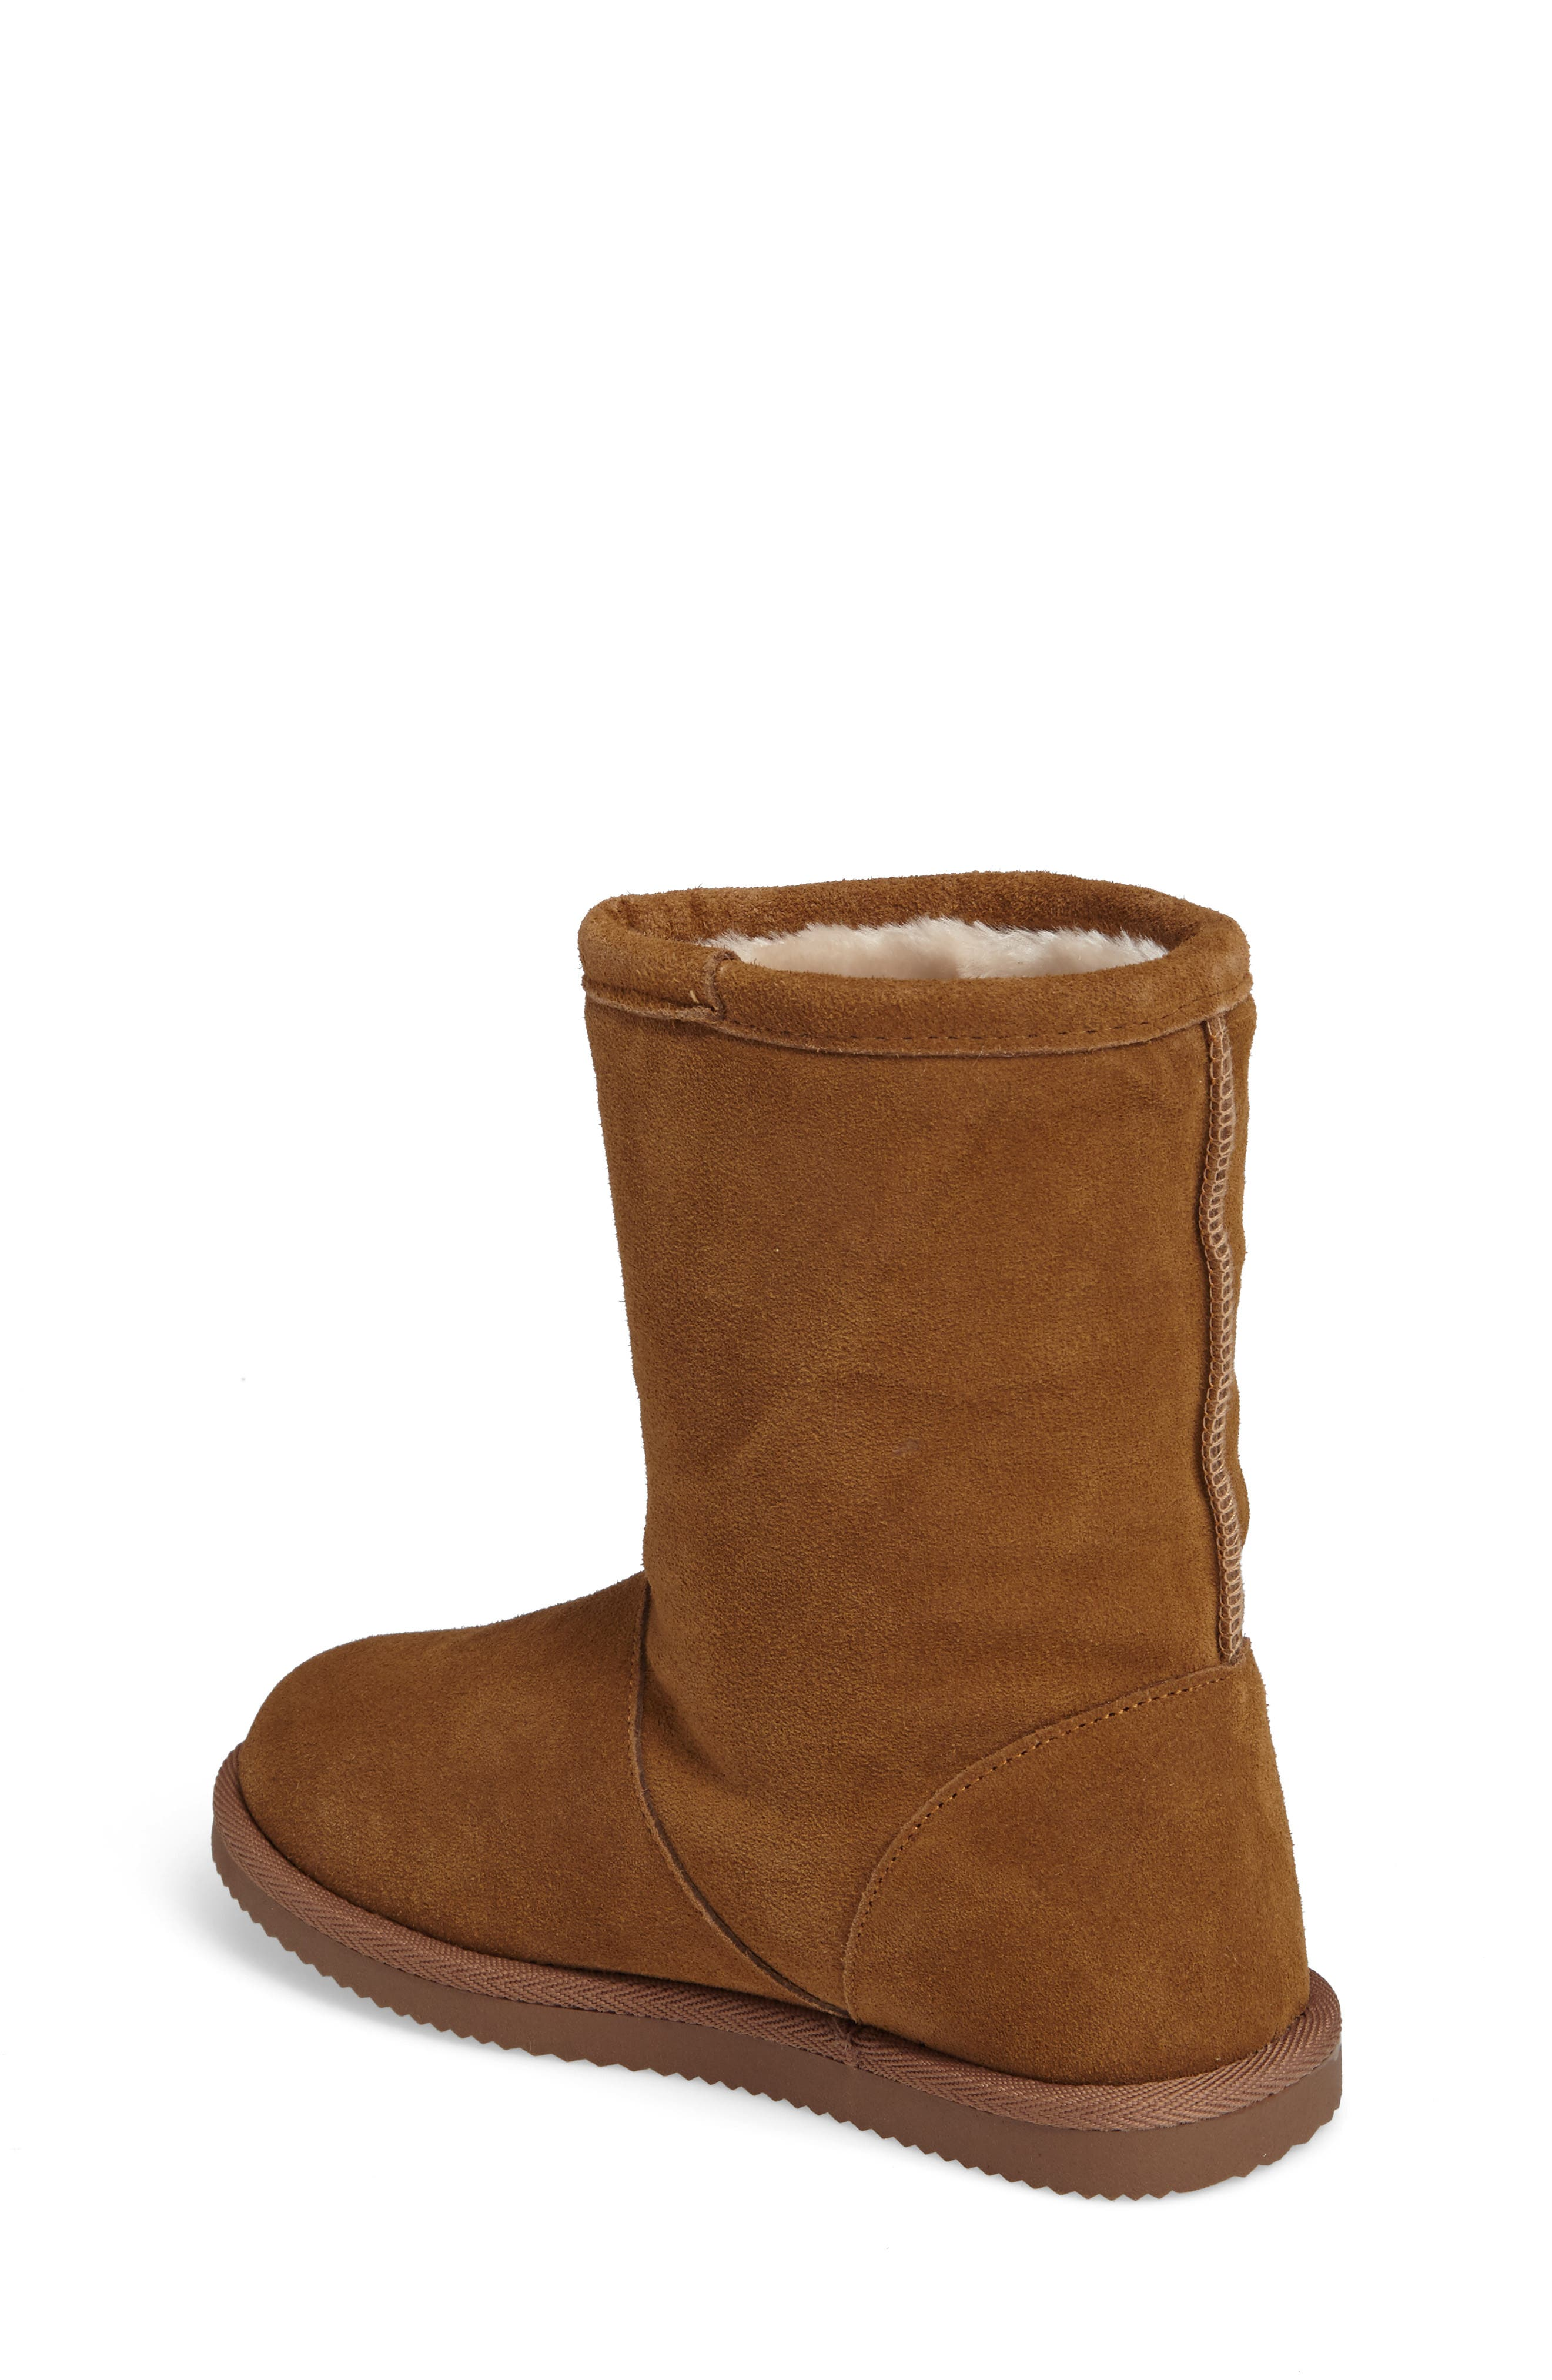 Aline Embroidered Faux Fur Boot,                             Alternate thumbnail 2, color,                             Chestnut Suede